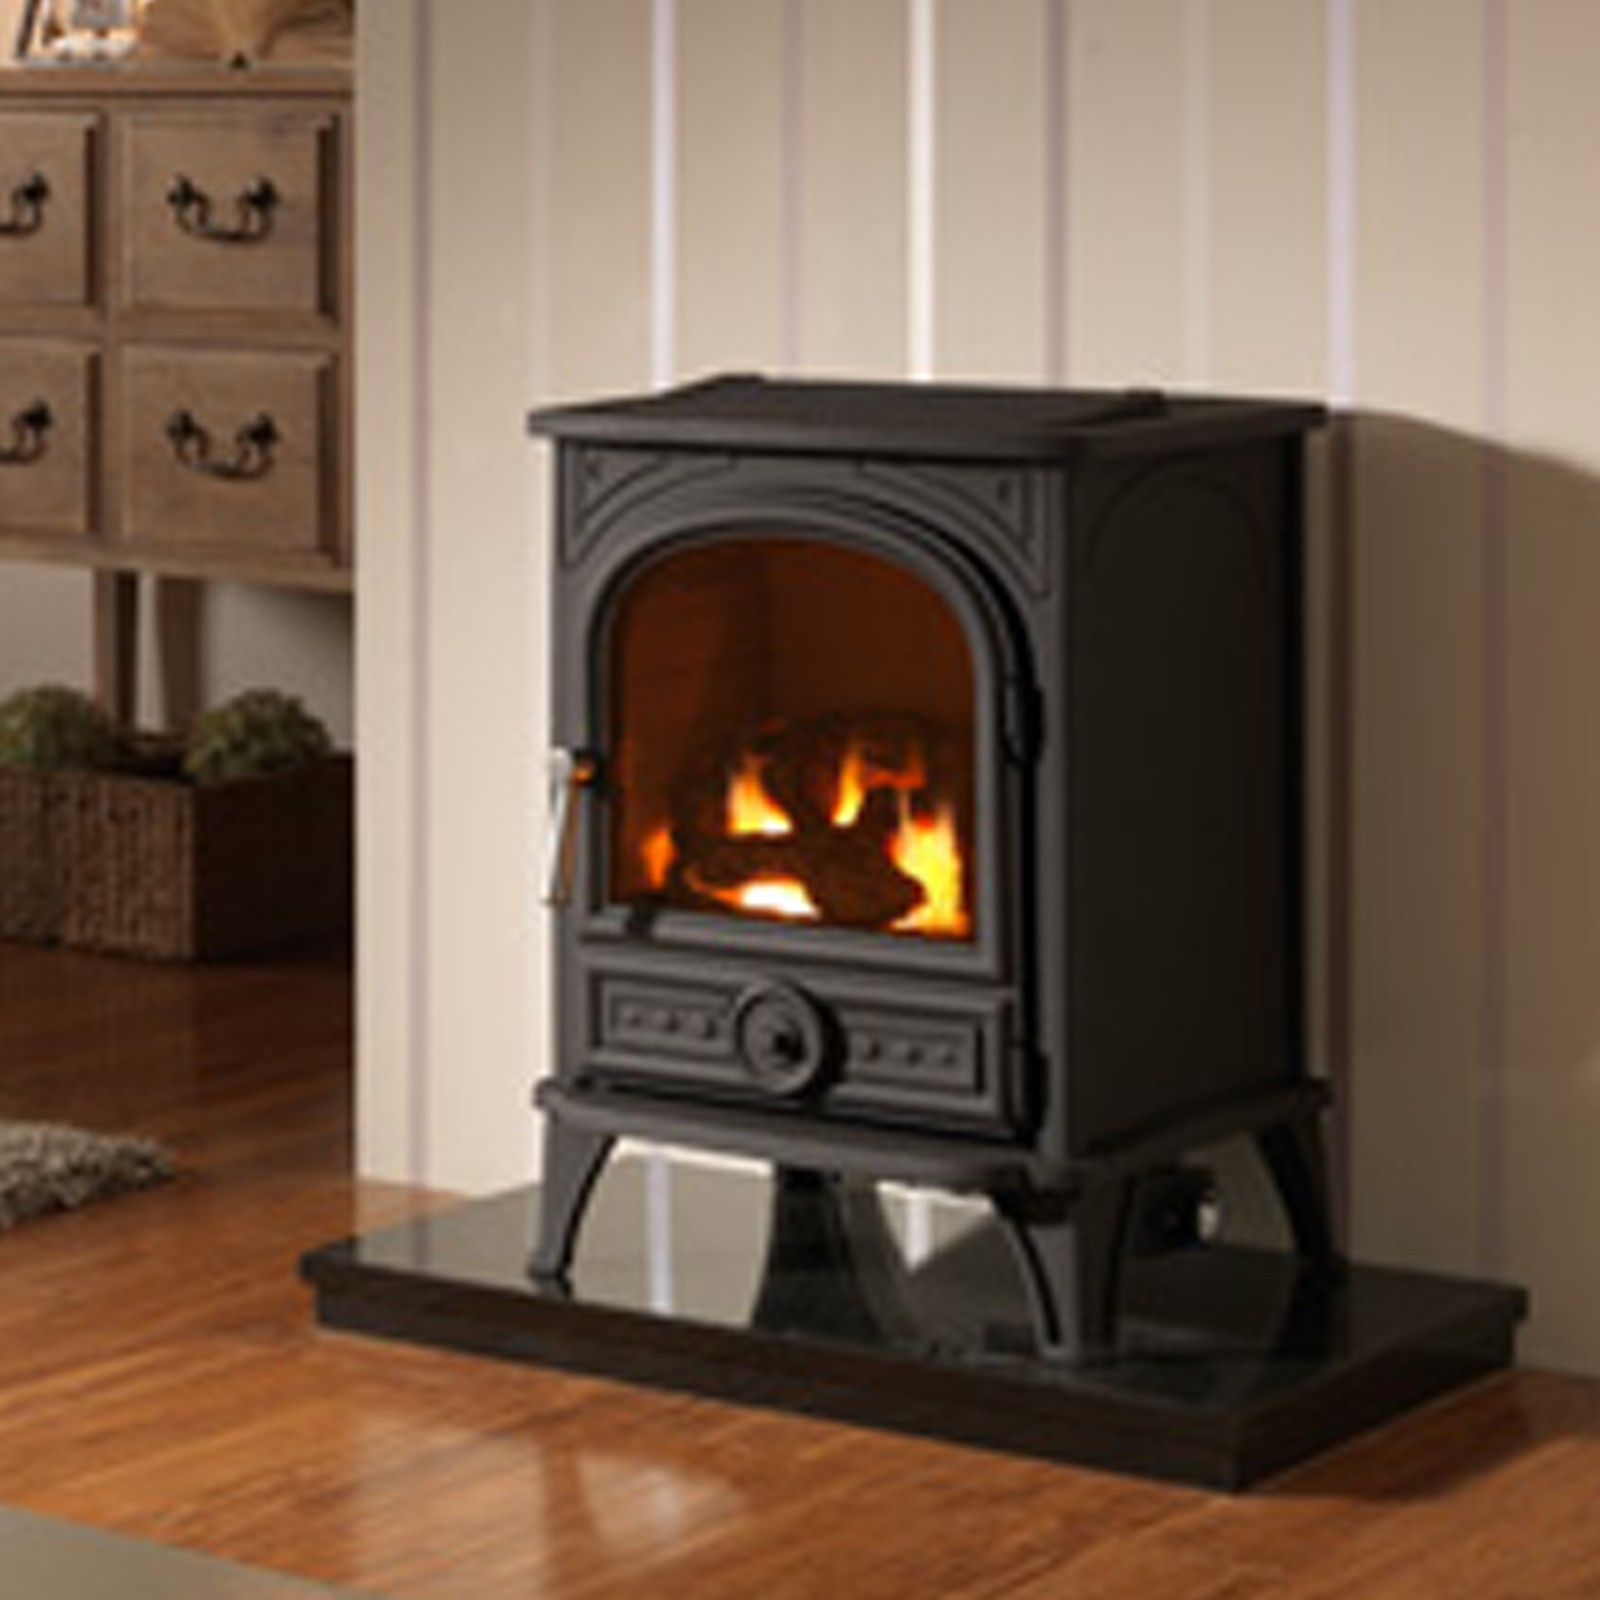 Chimney Liner For Gas Fireplace